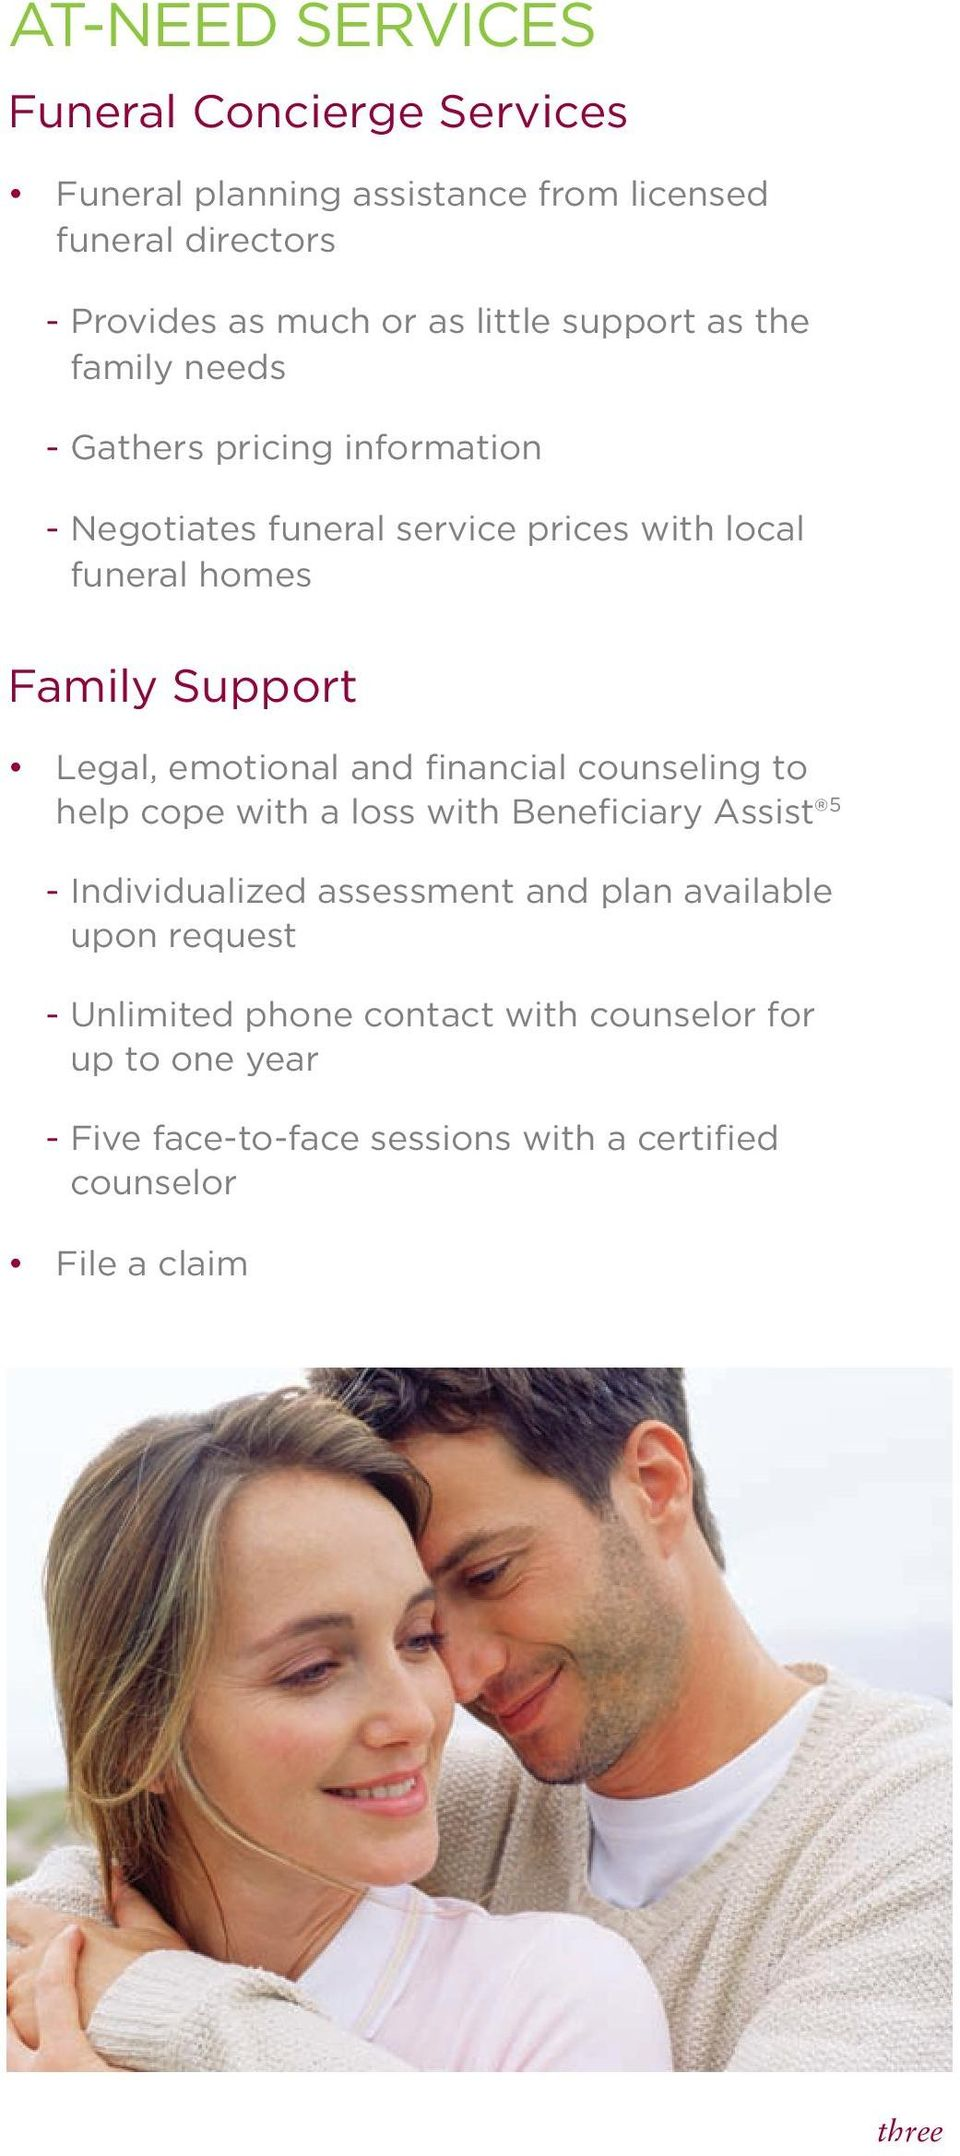 Legal, emotional and financial counseling to help cope with a loss with Beneficiary Assist 5 - Individualized assessment and plan available